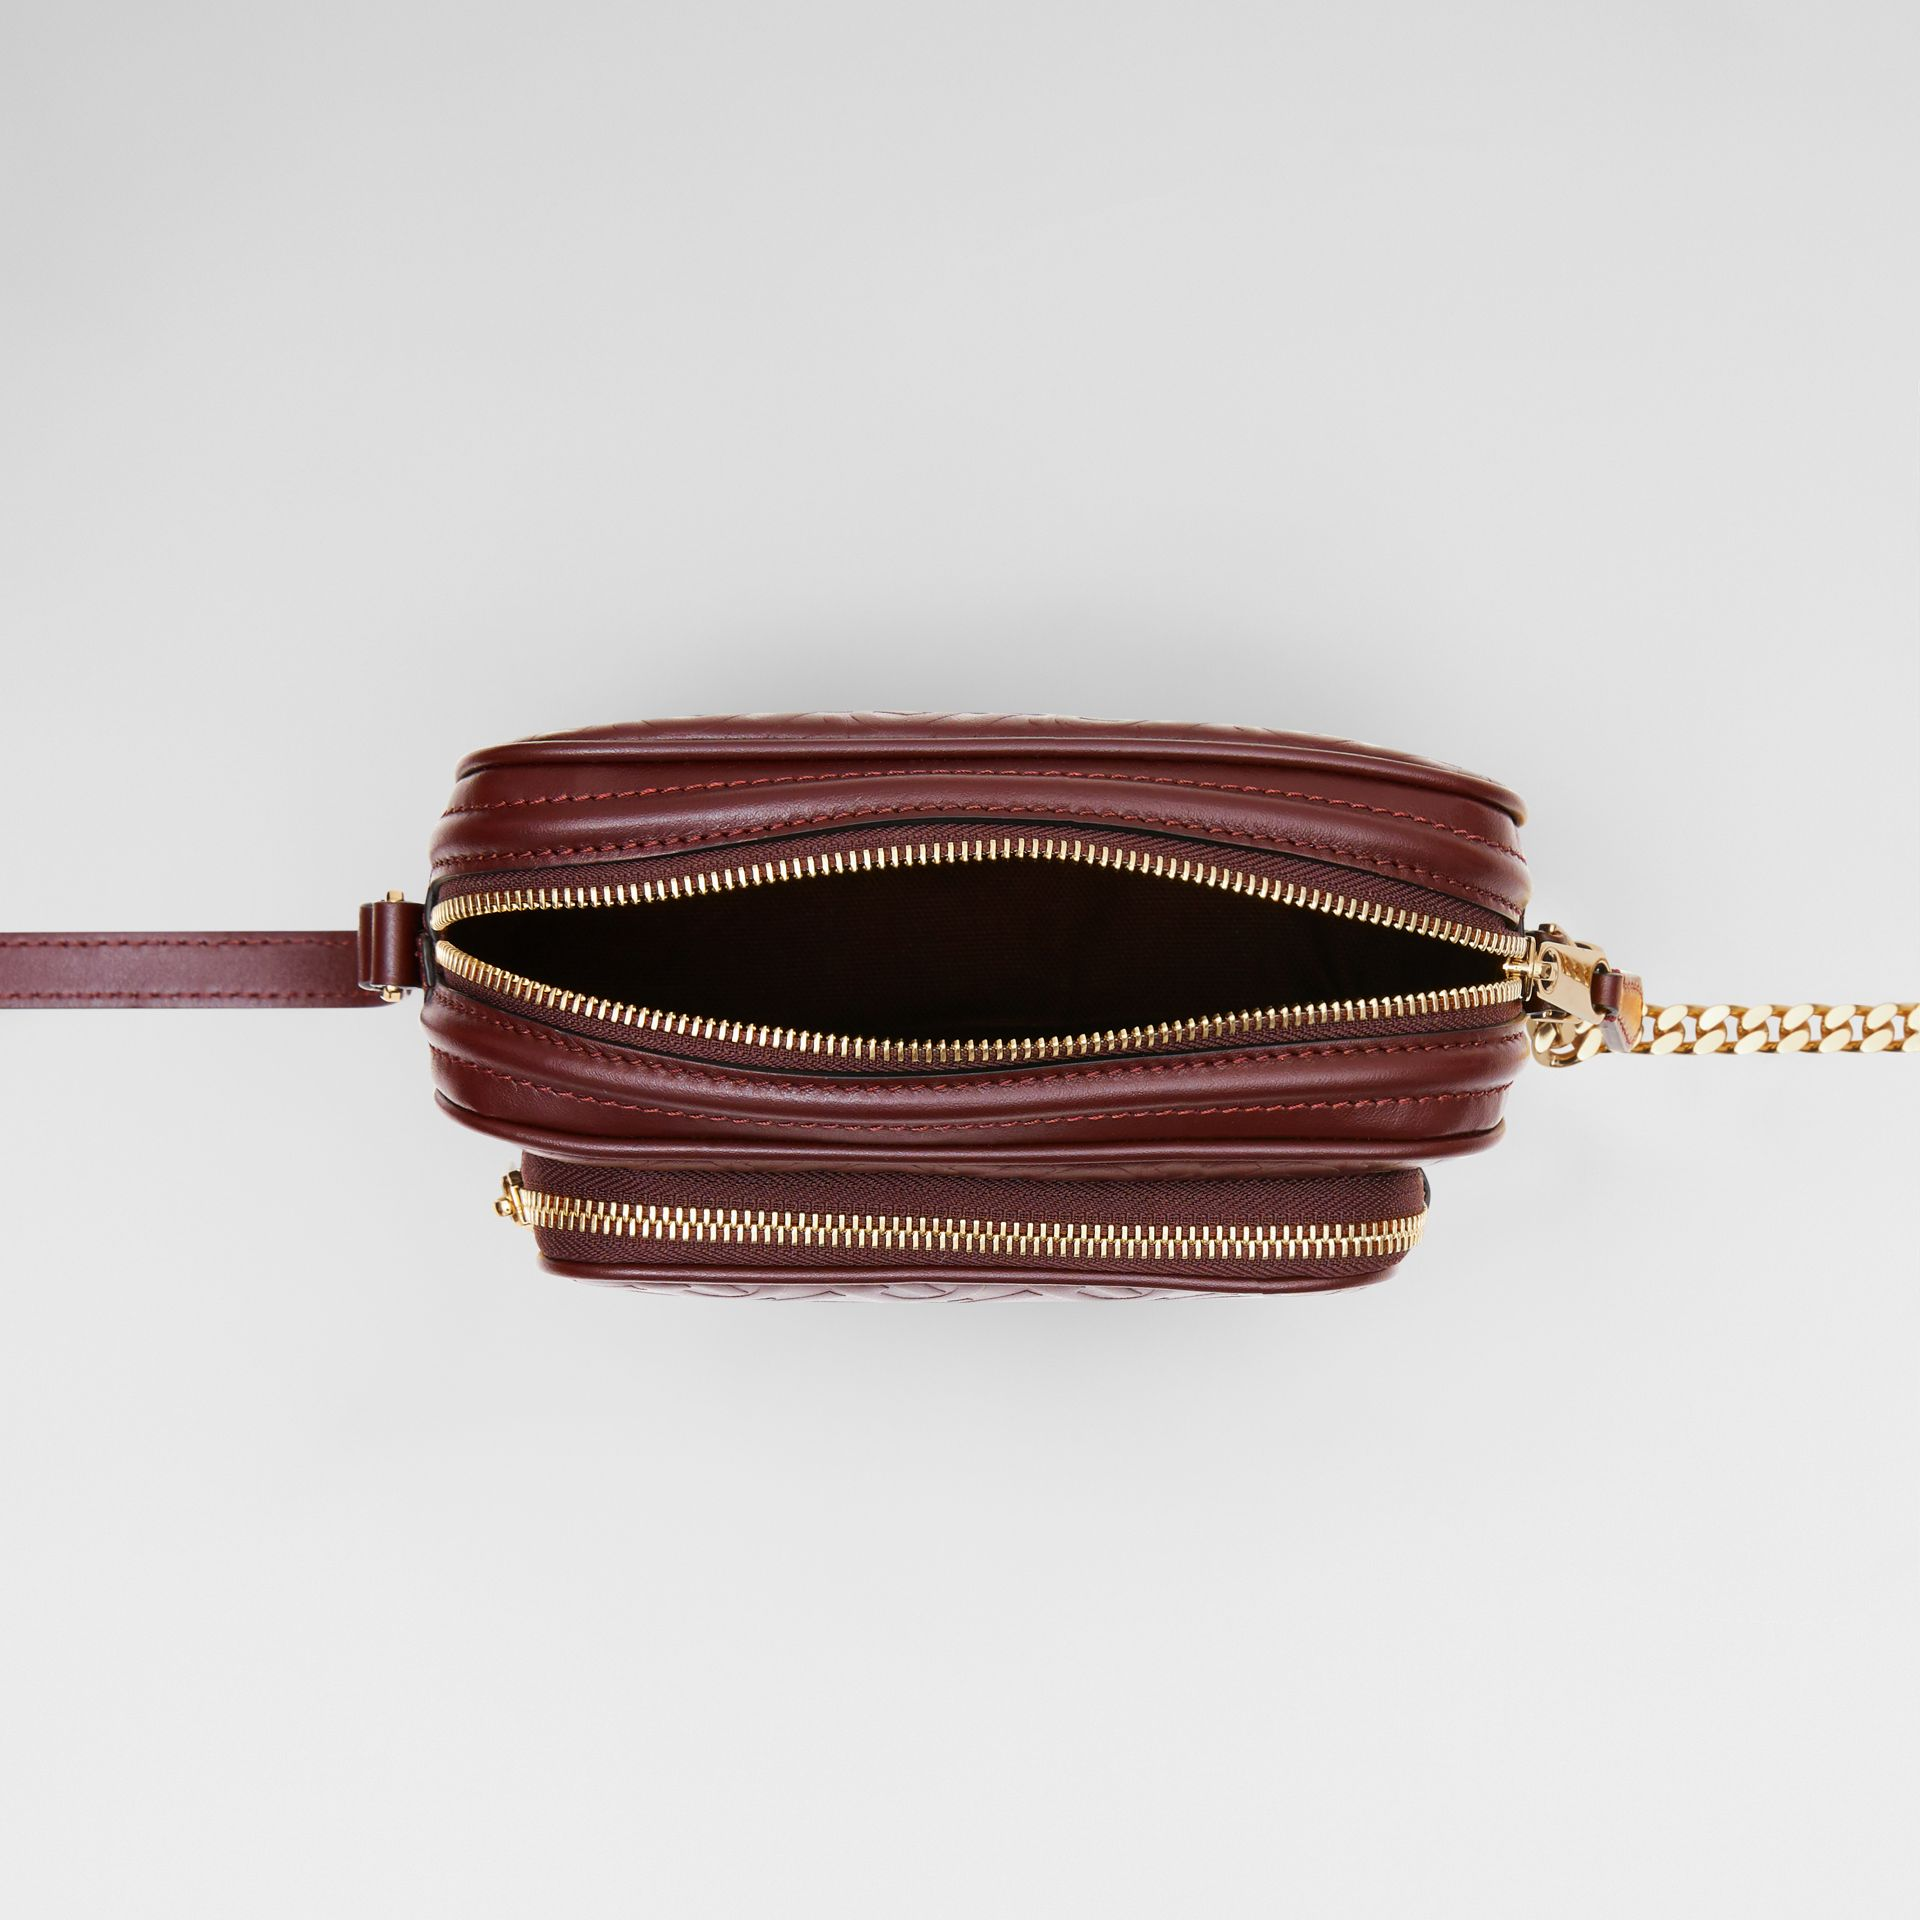 Monogram Leather Camera Bag in Dark Burgundy - Women | Burberry - gallery image 3